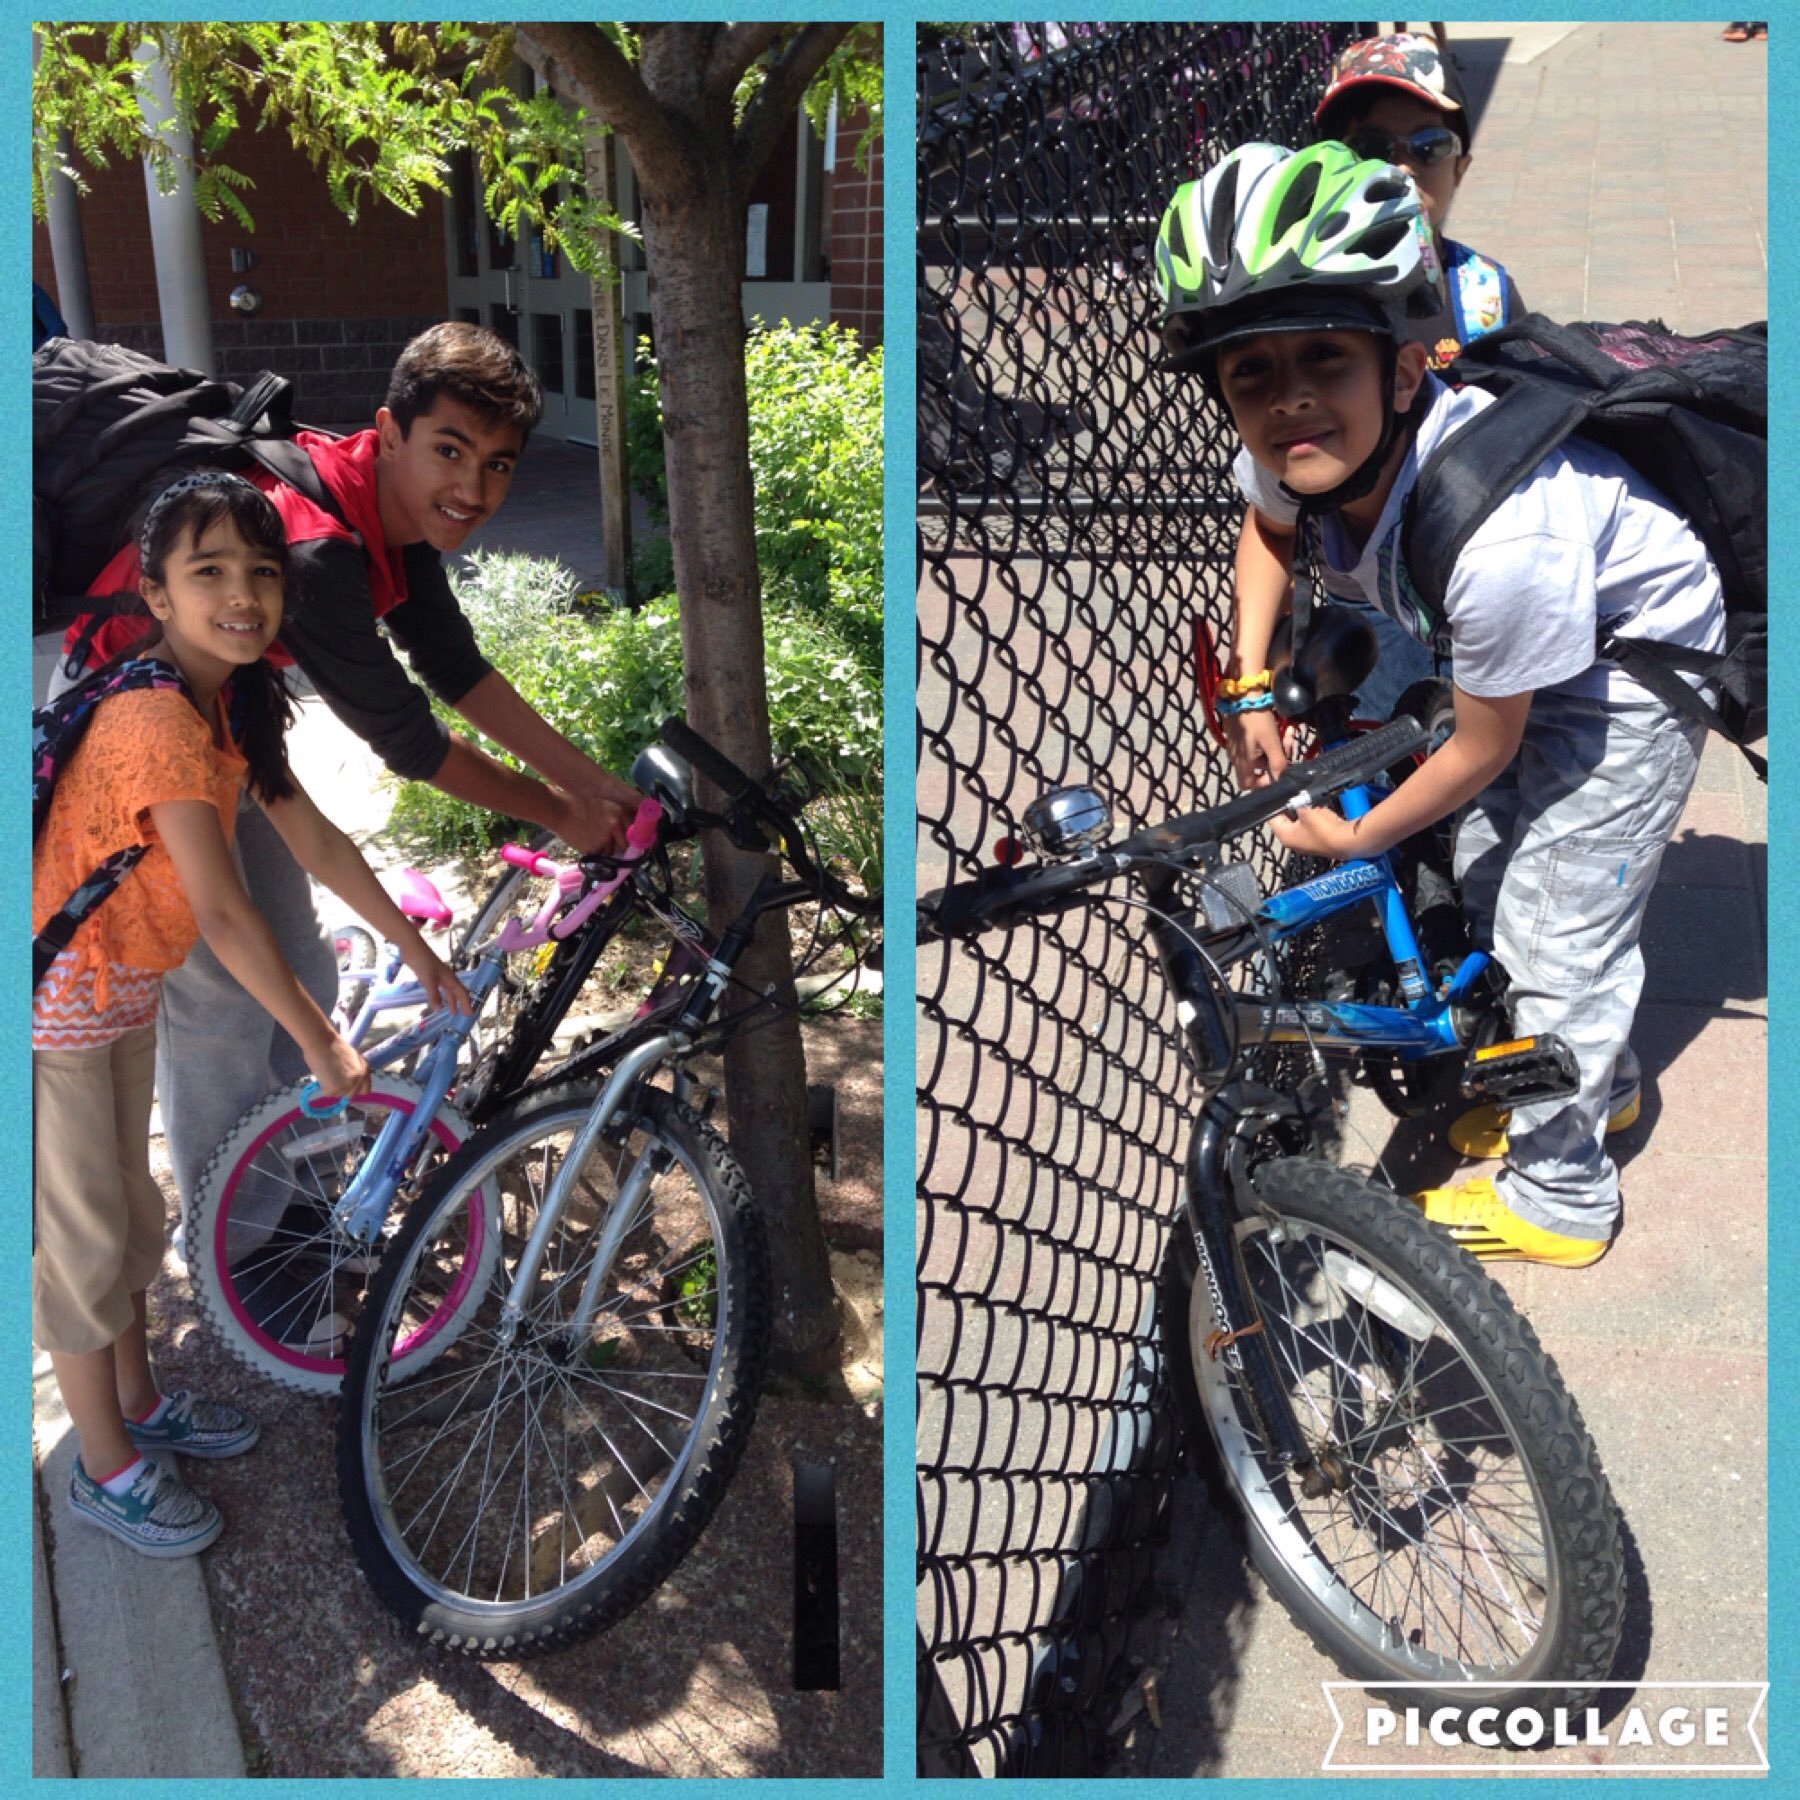 Racks were so full today we had to lock up to trees & the fence! #EarlyBirdGetsASpot #BikeToSchool @peelschools https://t.co/1Ei5Pwx3zE